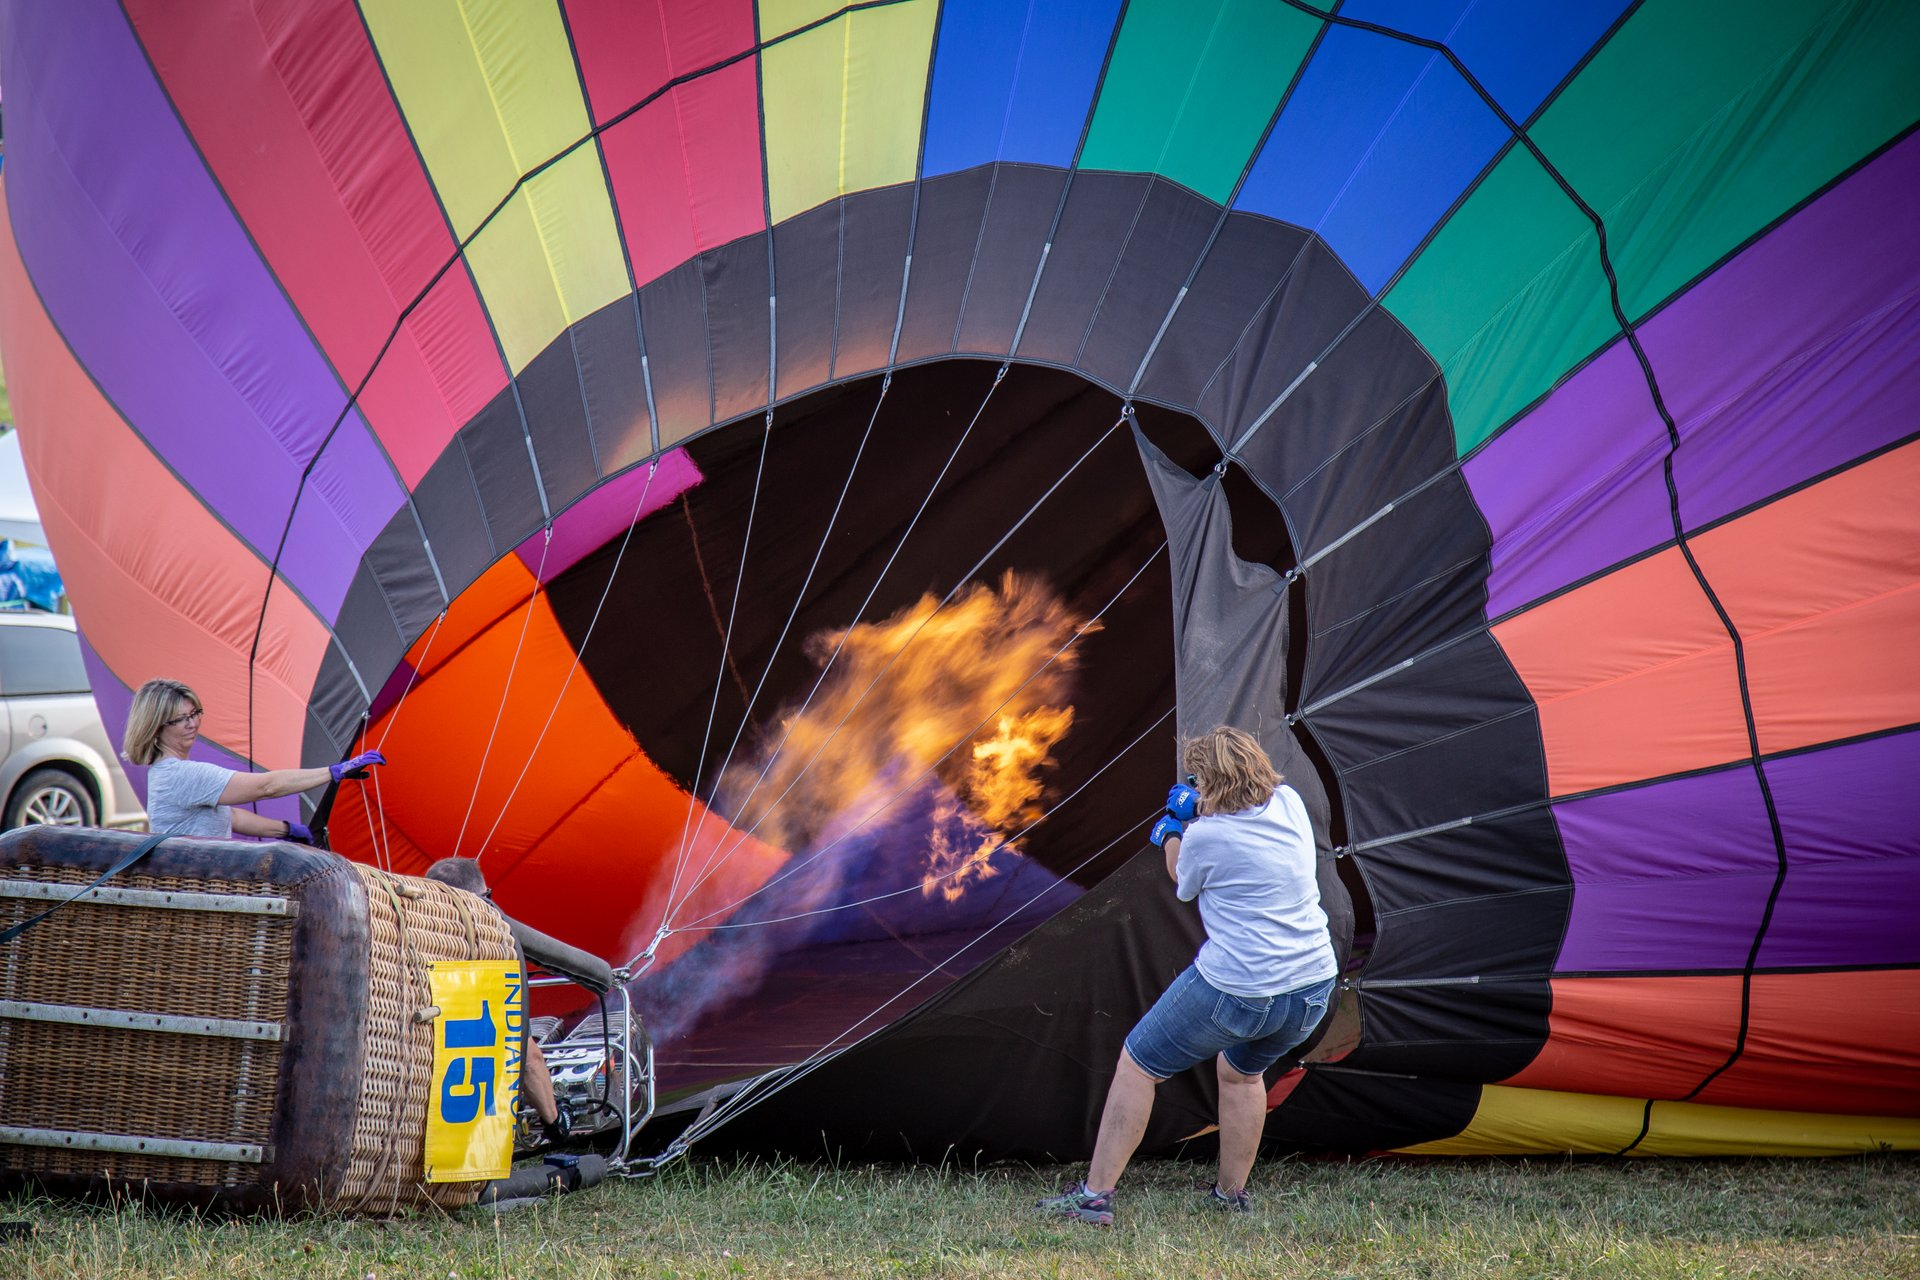 National Balloon Classic in Iowa - Best Season 2020